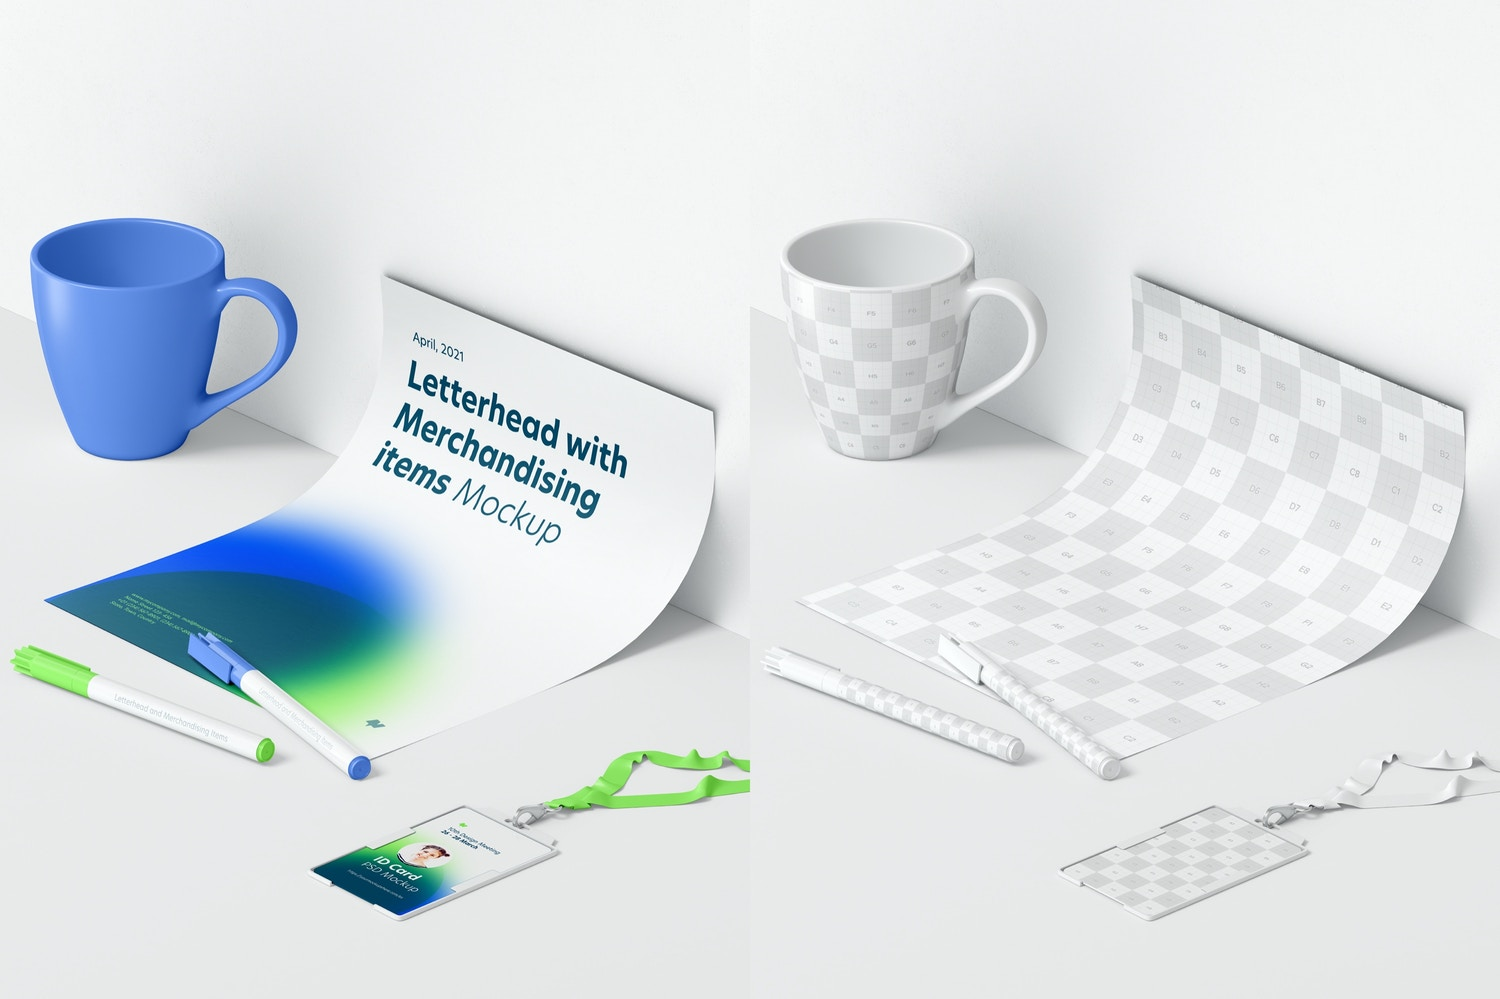 Letterhead and Merchandising Items Mockup, Perspective View